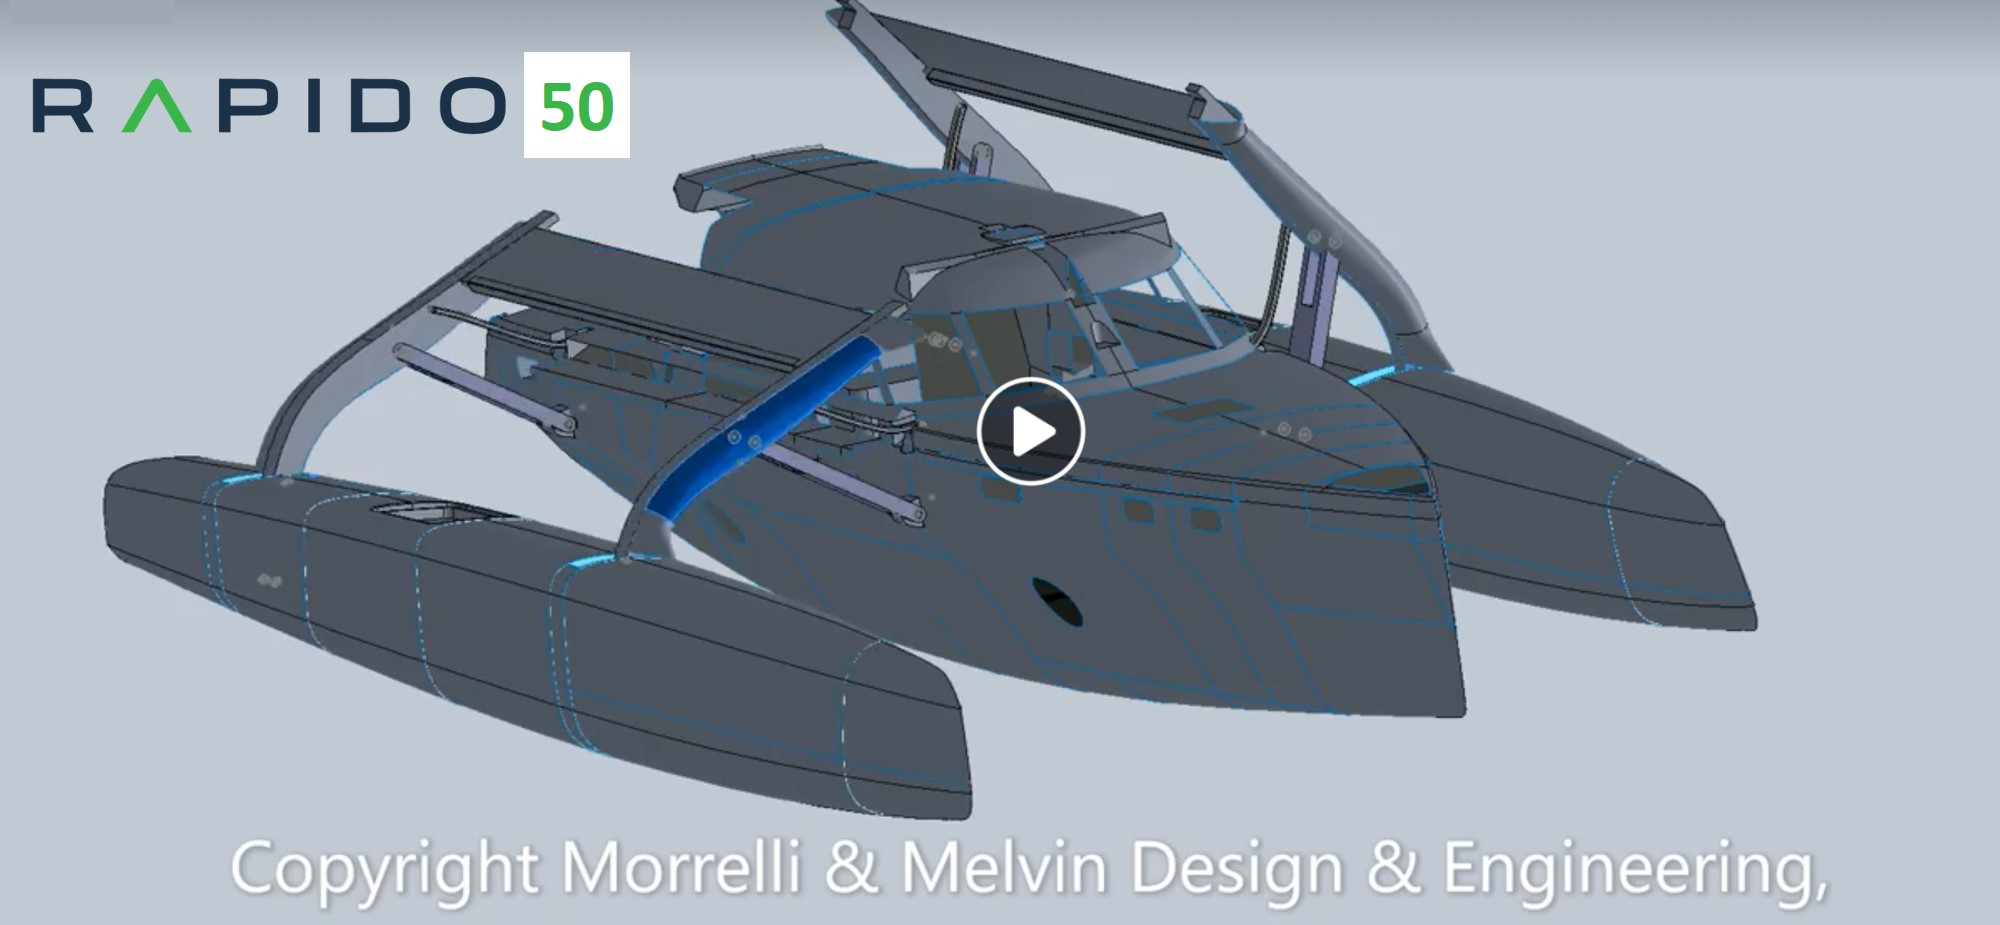 Video: Patented folding mechanism for Rapido 50